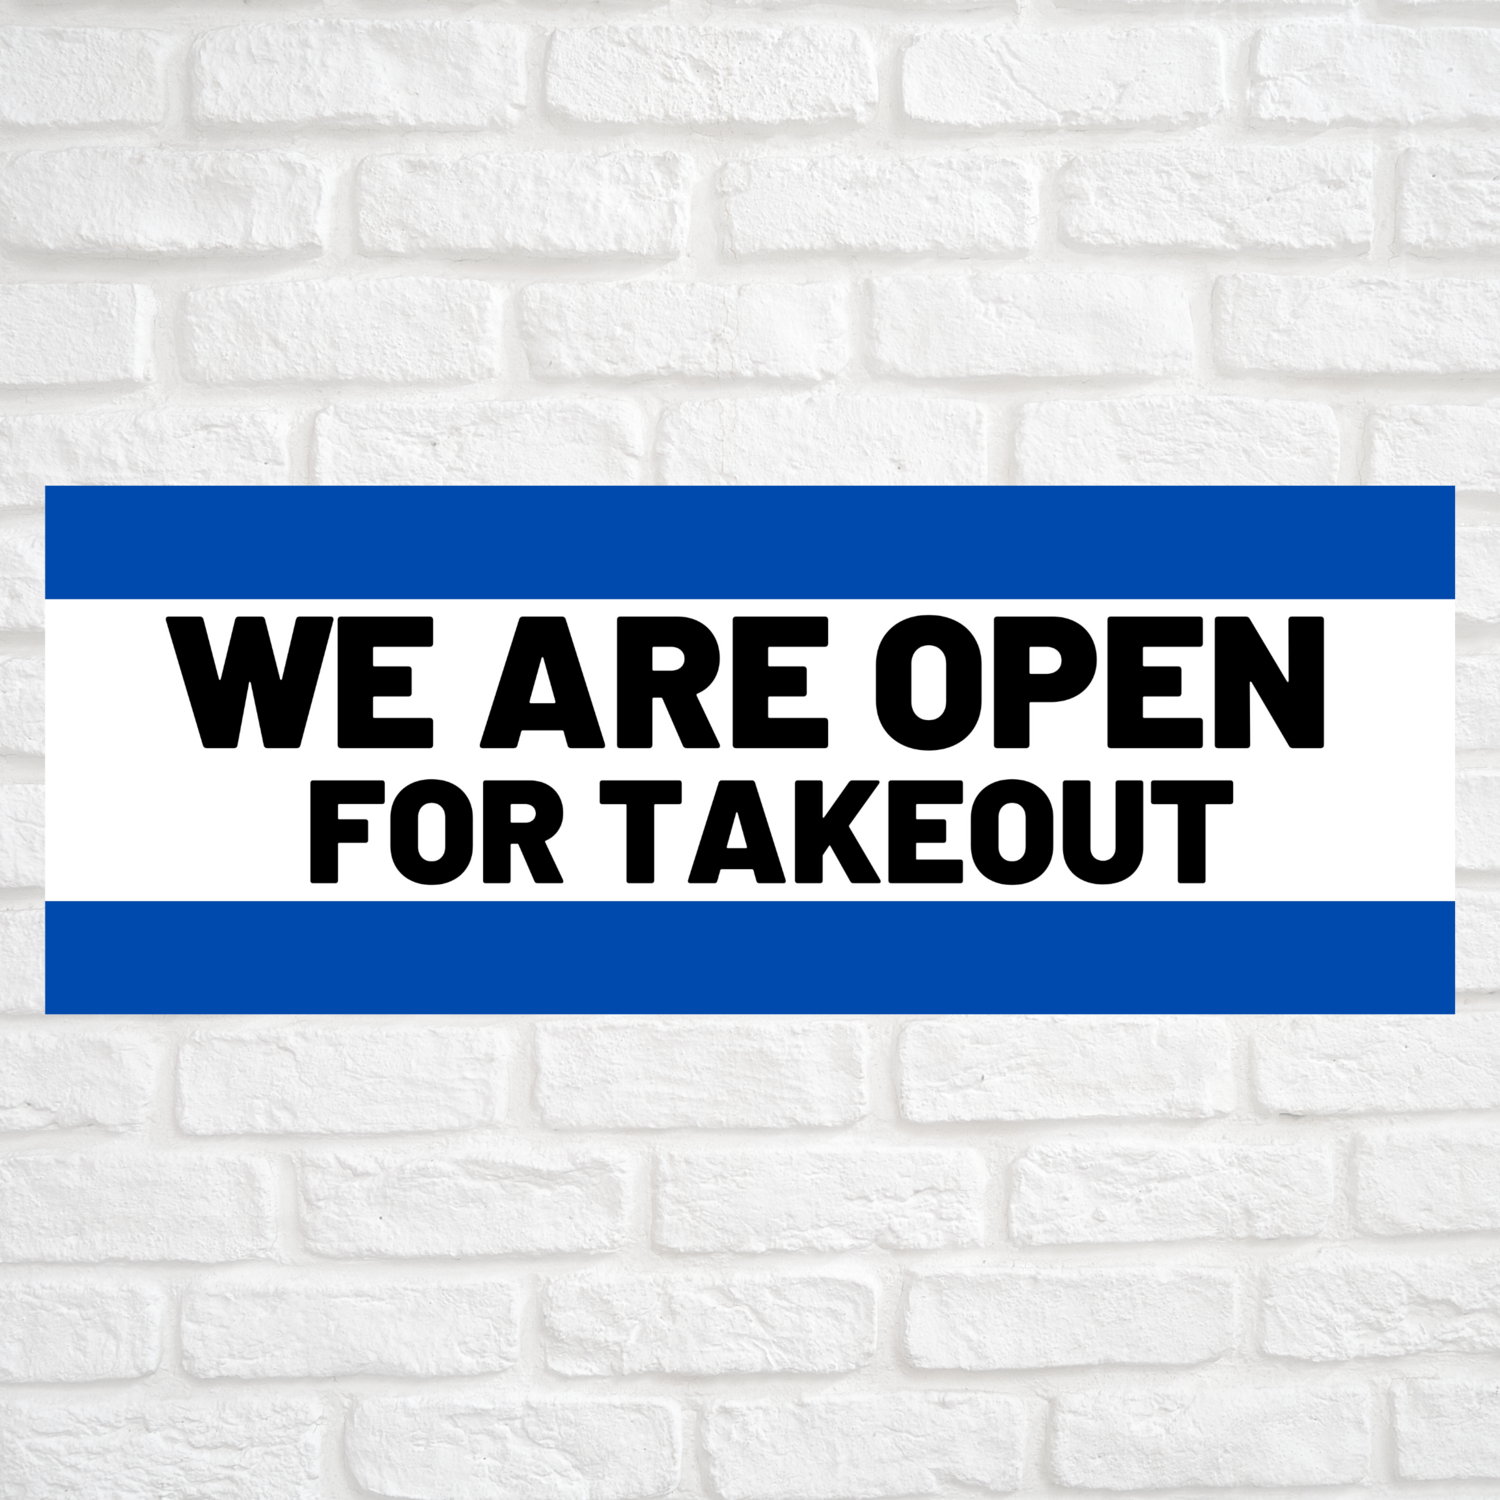 We Are Open For Takeout Blue/Blue